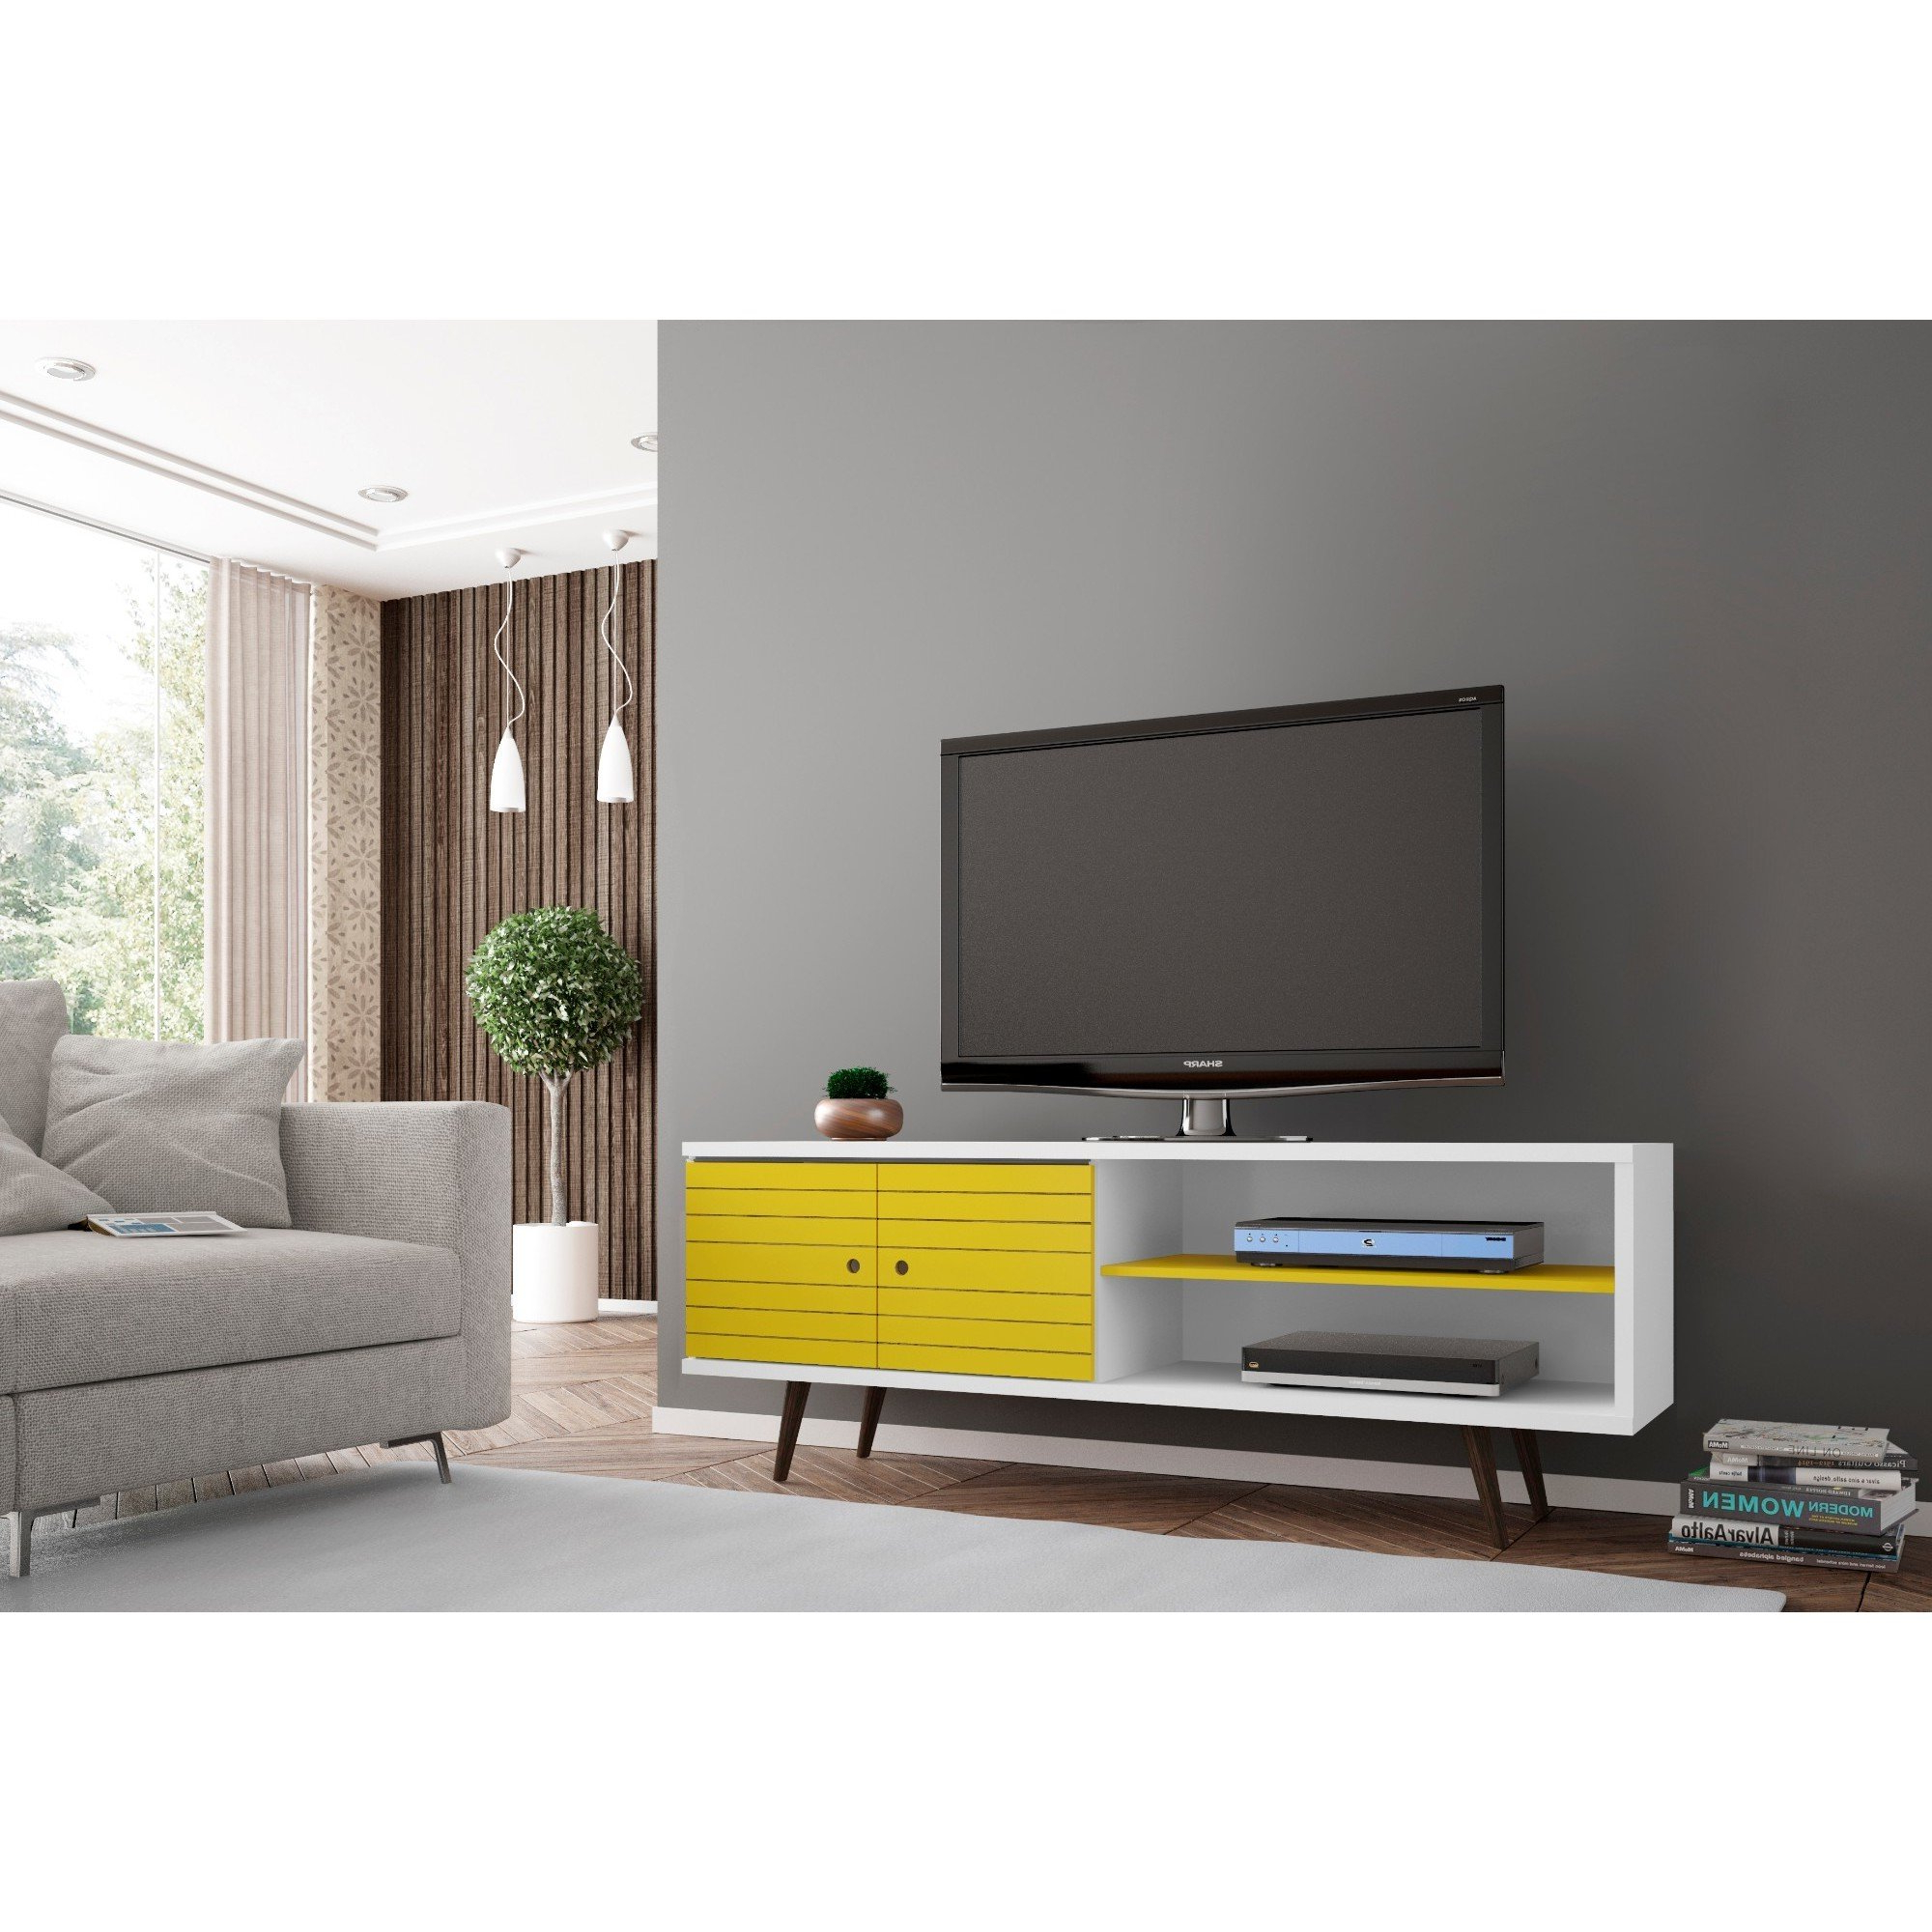 Shop Carson Carrington Sortland Wooden Modern Tv Stand – On Sale Pertaining To Canyon 64 Inch Tv Stands (View 15 of 20)